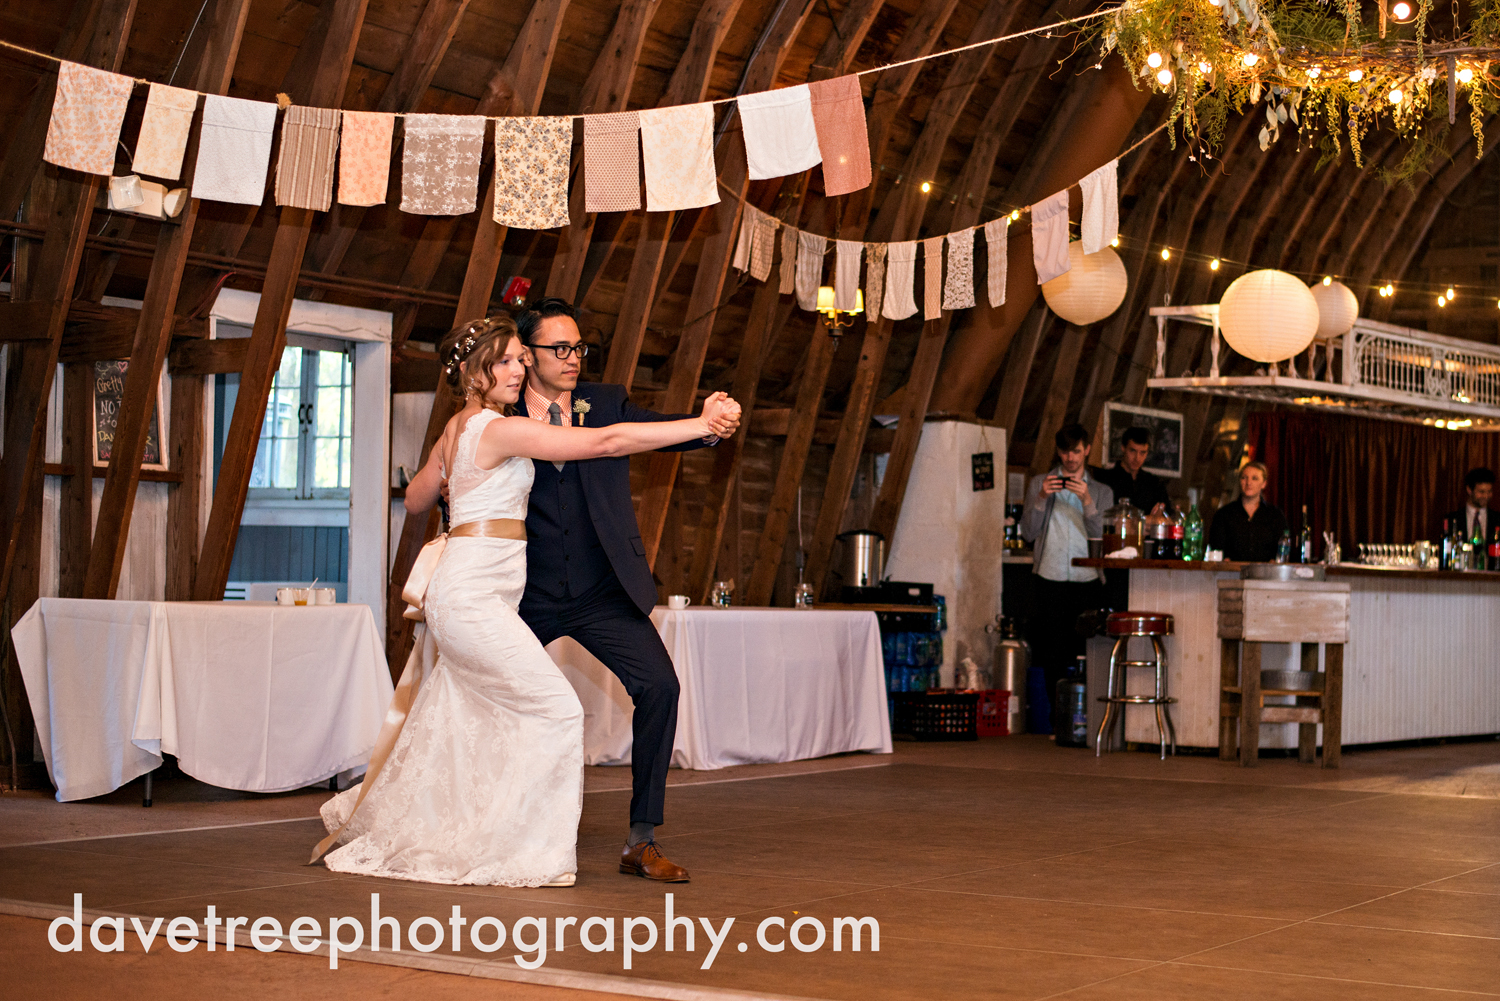 benton_harbor_wedding_photographer_blue_dress_barn_122.jpg